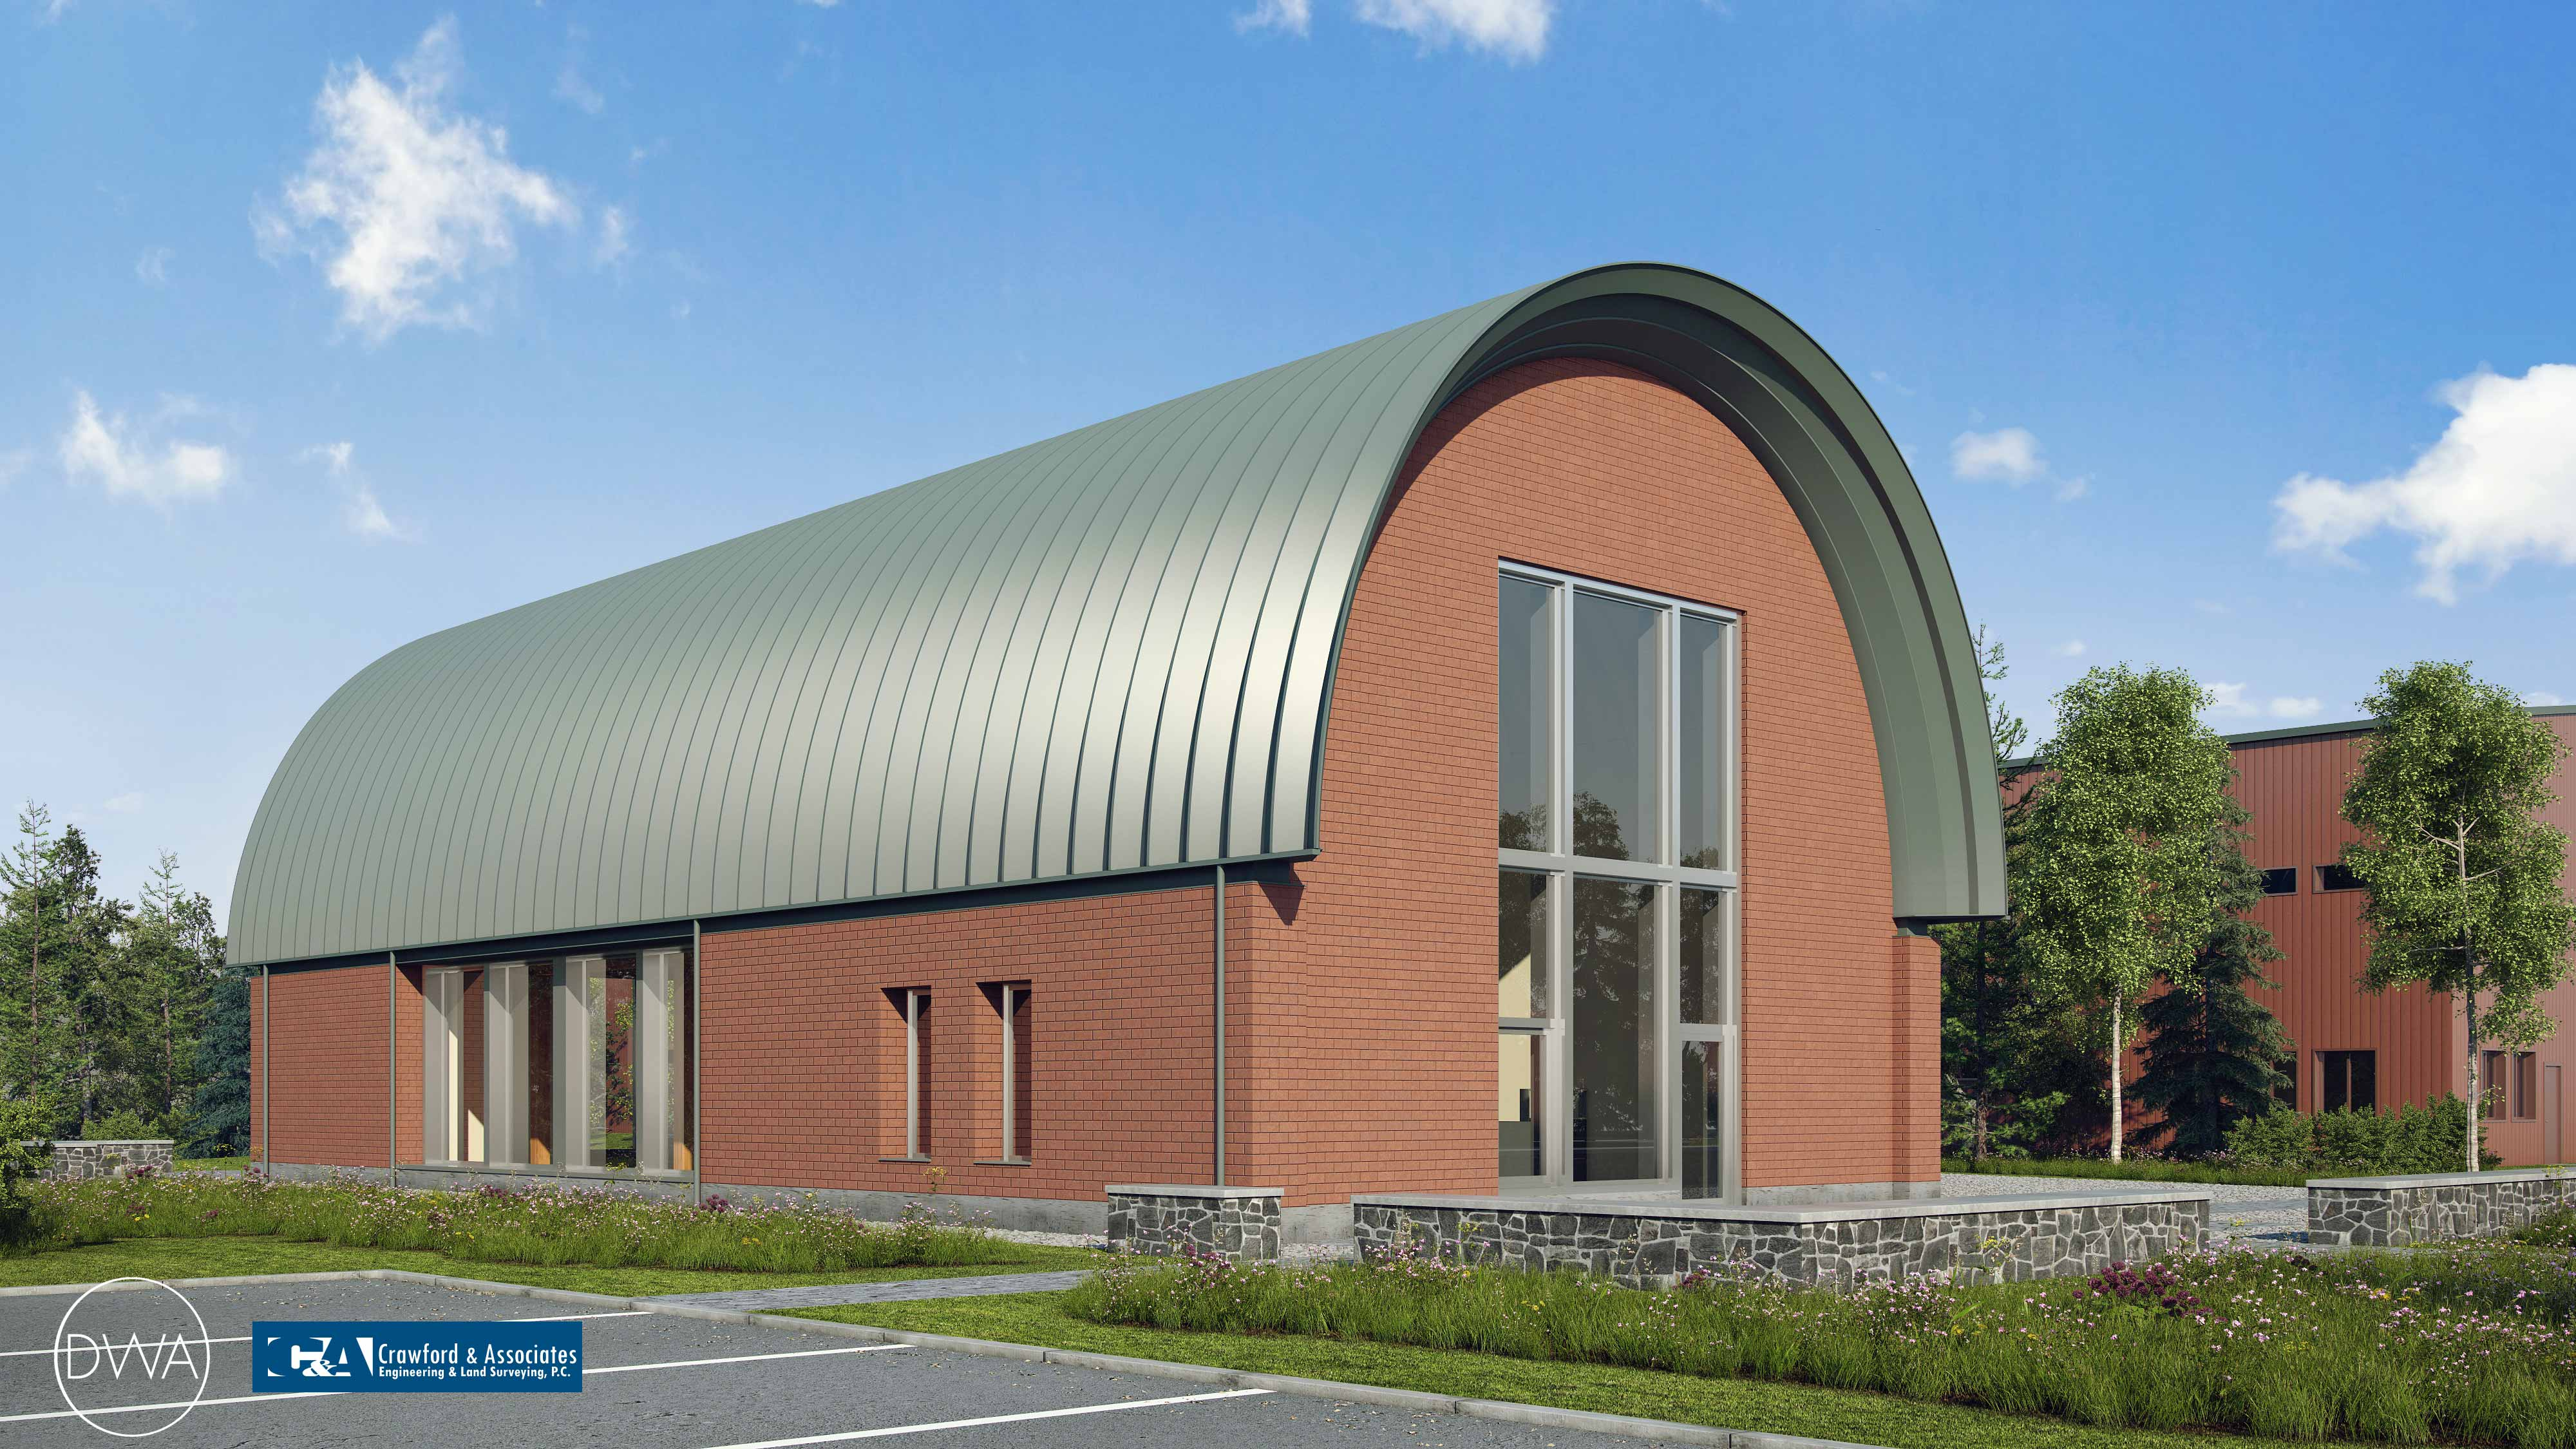 Tci of ny commissions first headquarters in the nation to achieve the planned tci of ny corporate headquarters is the first commercial building in the united states to achieve passive house design stage certification 1betcityfo Image collections